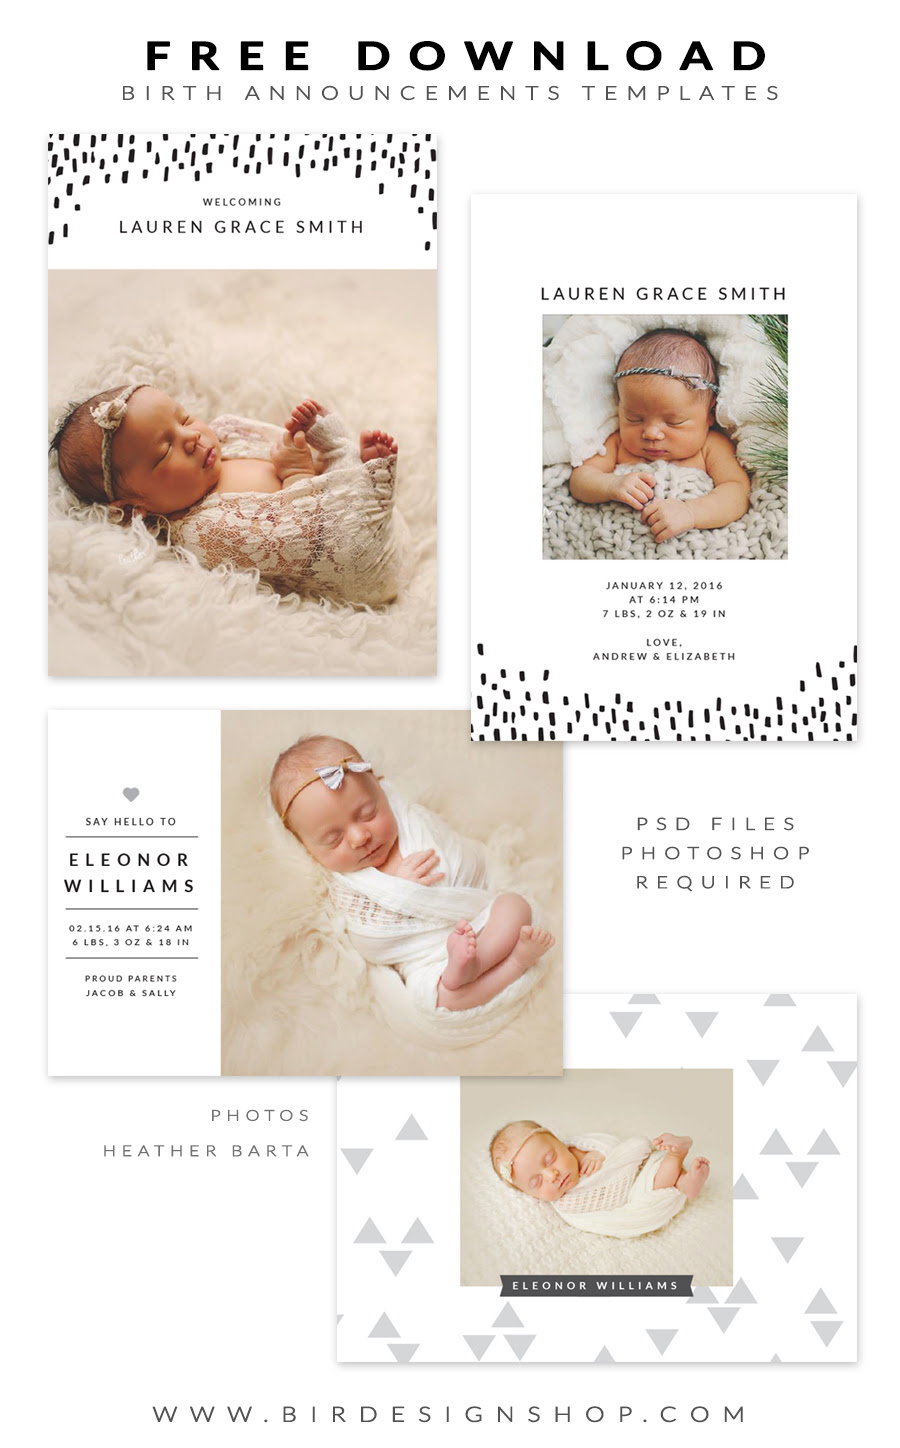 Free birth announcements templates for photoshop for Free online birth announcements templates